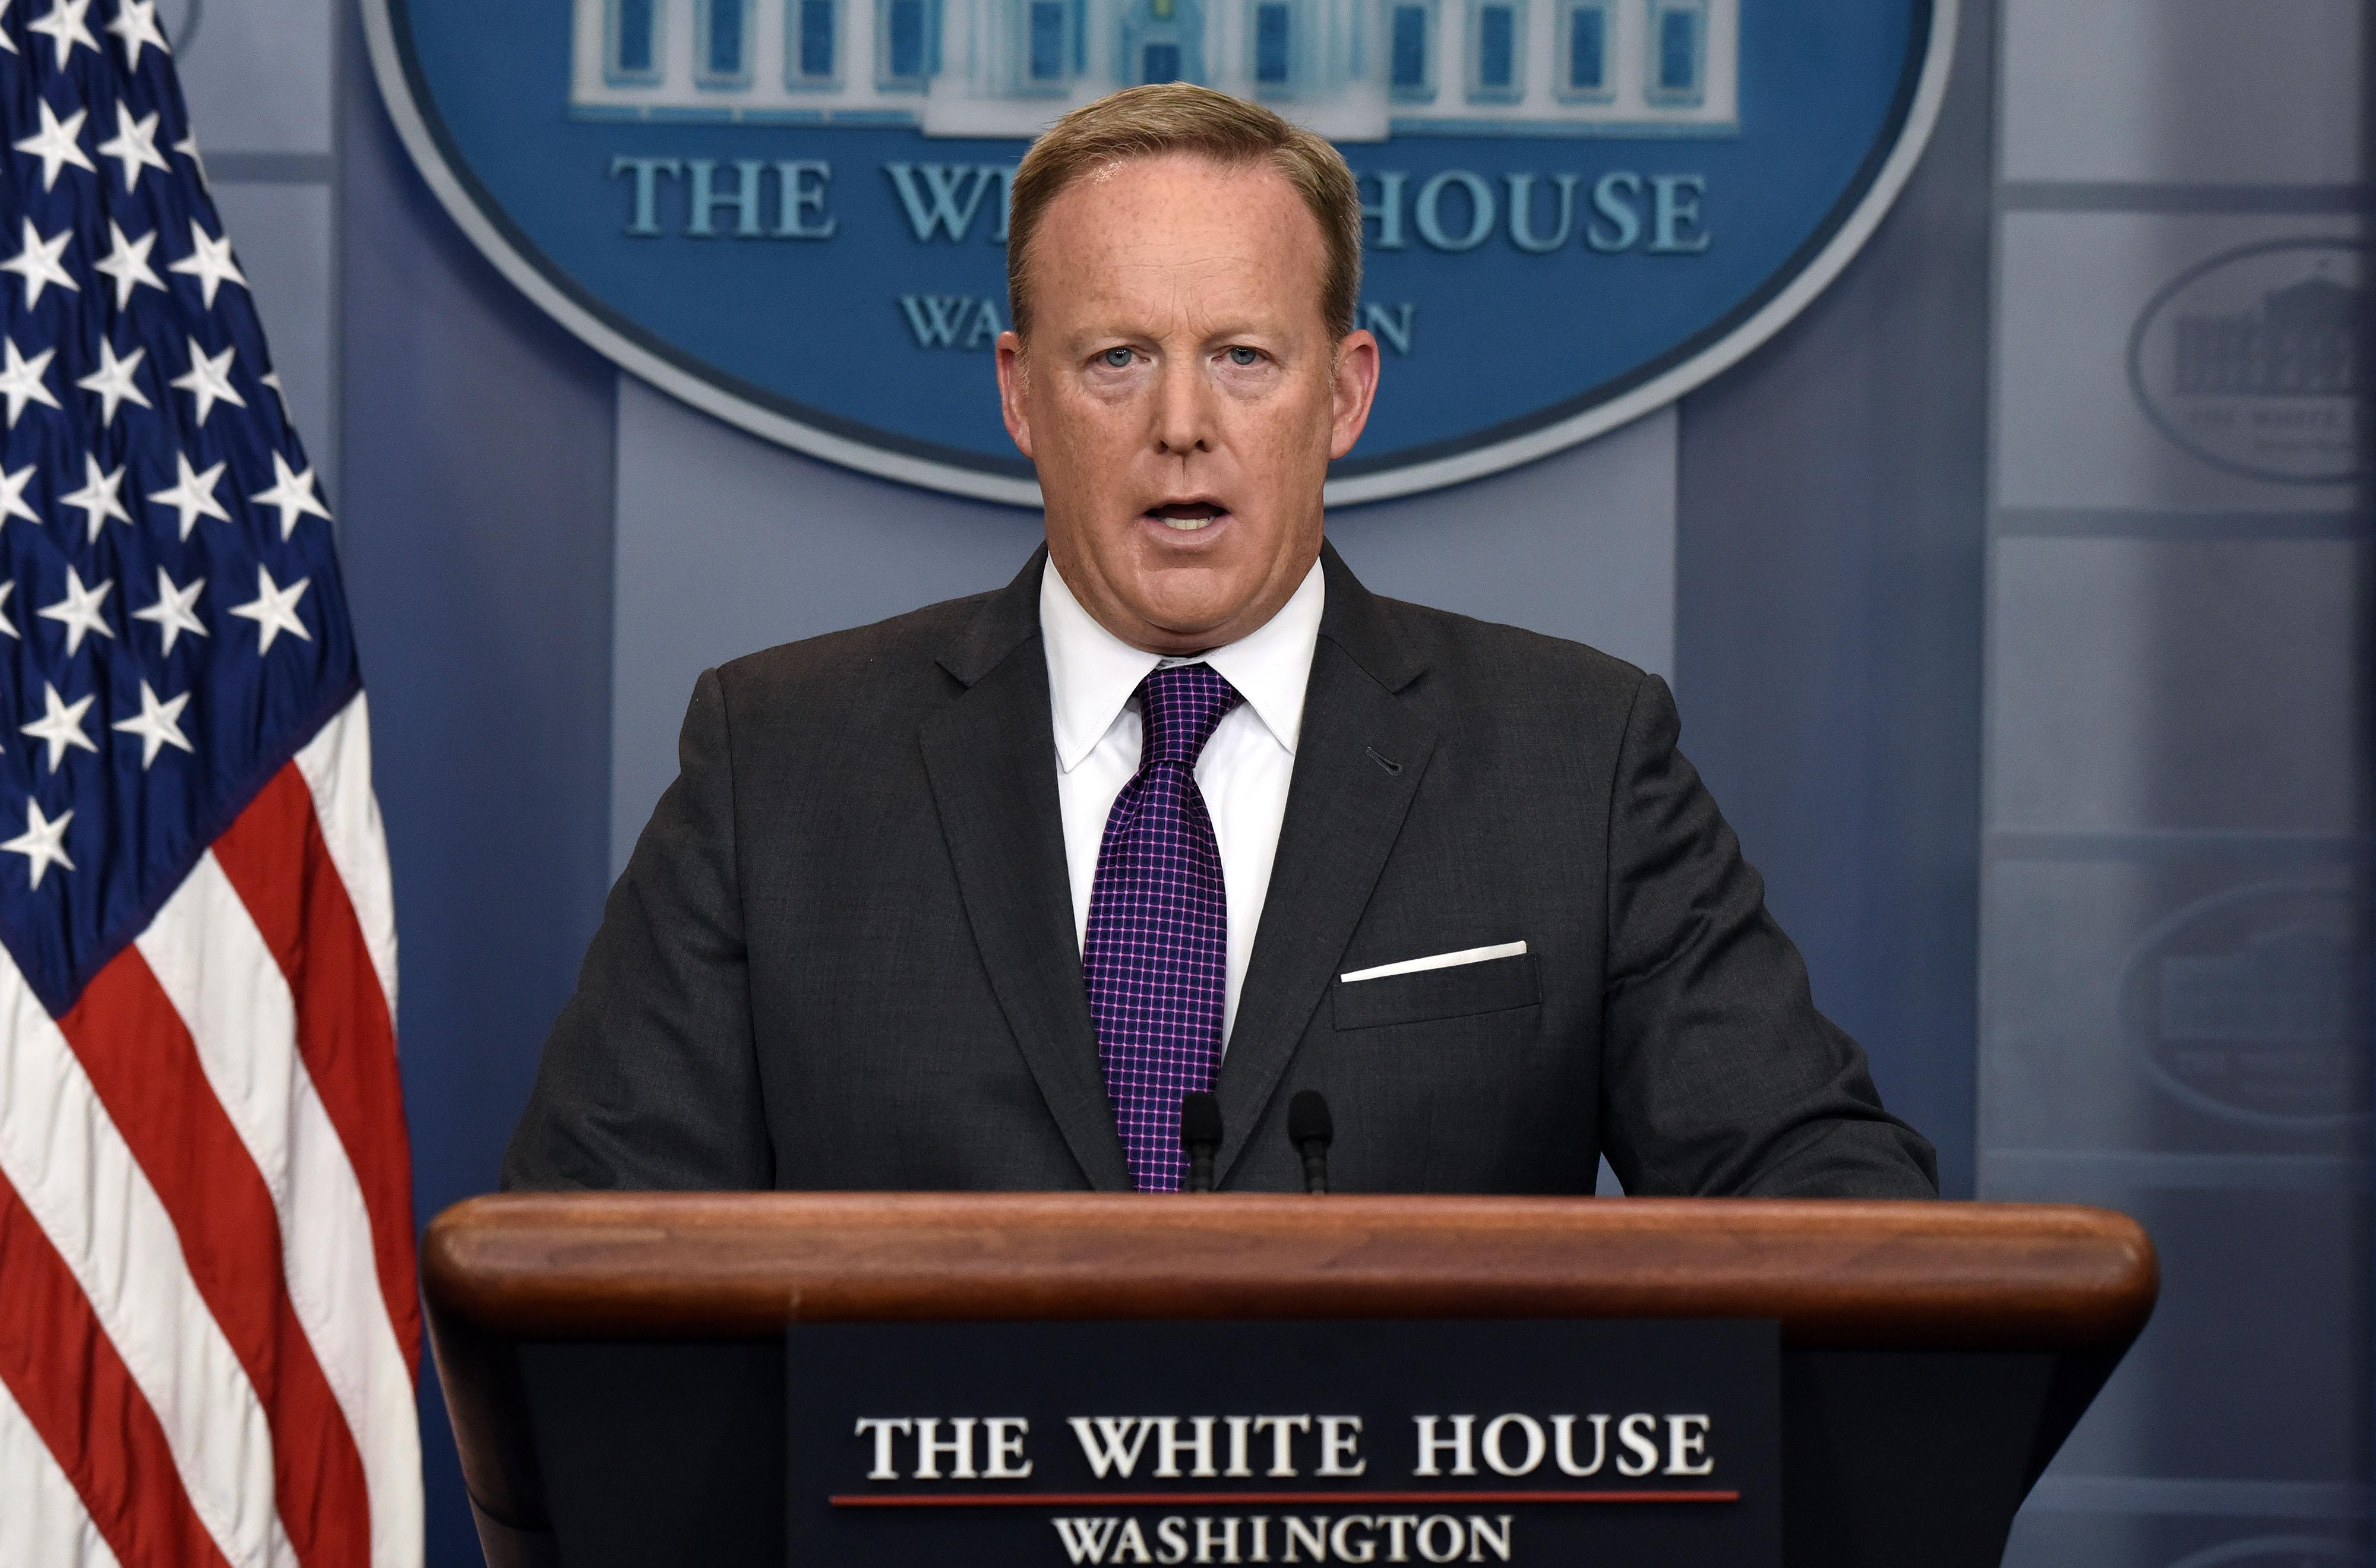 Then-White House Press Secretary Sean Spicer at the podium delivering the daily briefing at the White House on July 17, 2017 in Washington, DC.